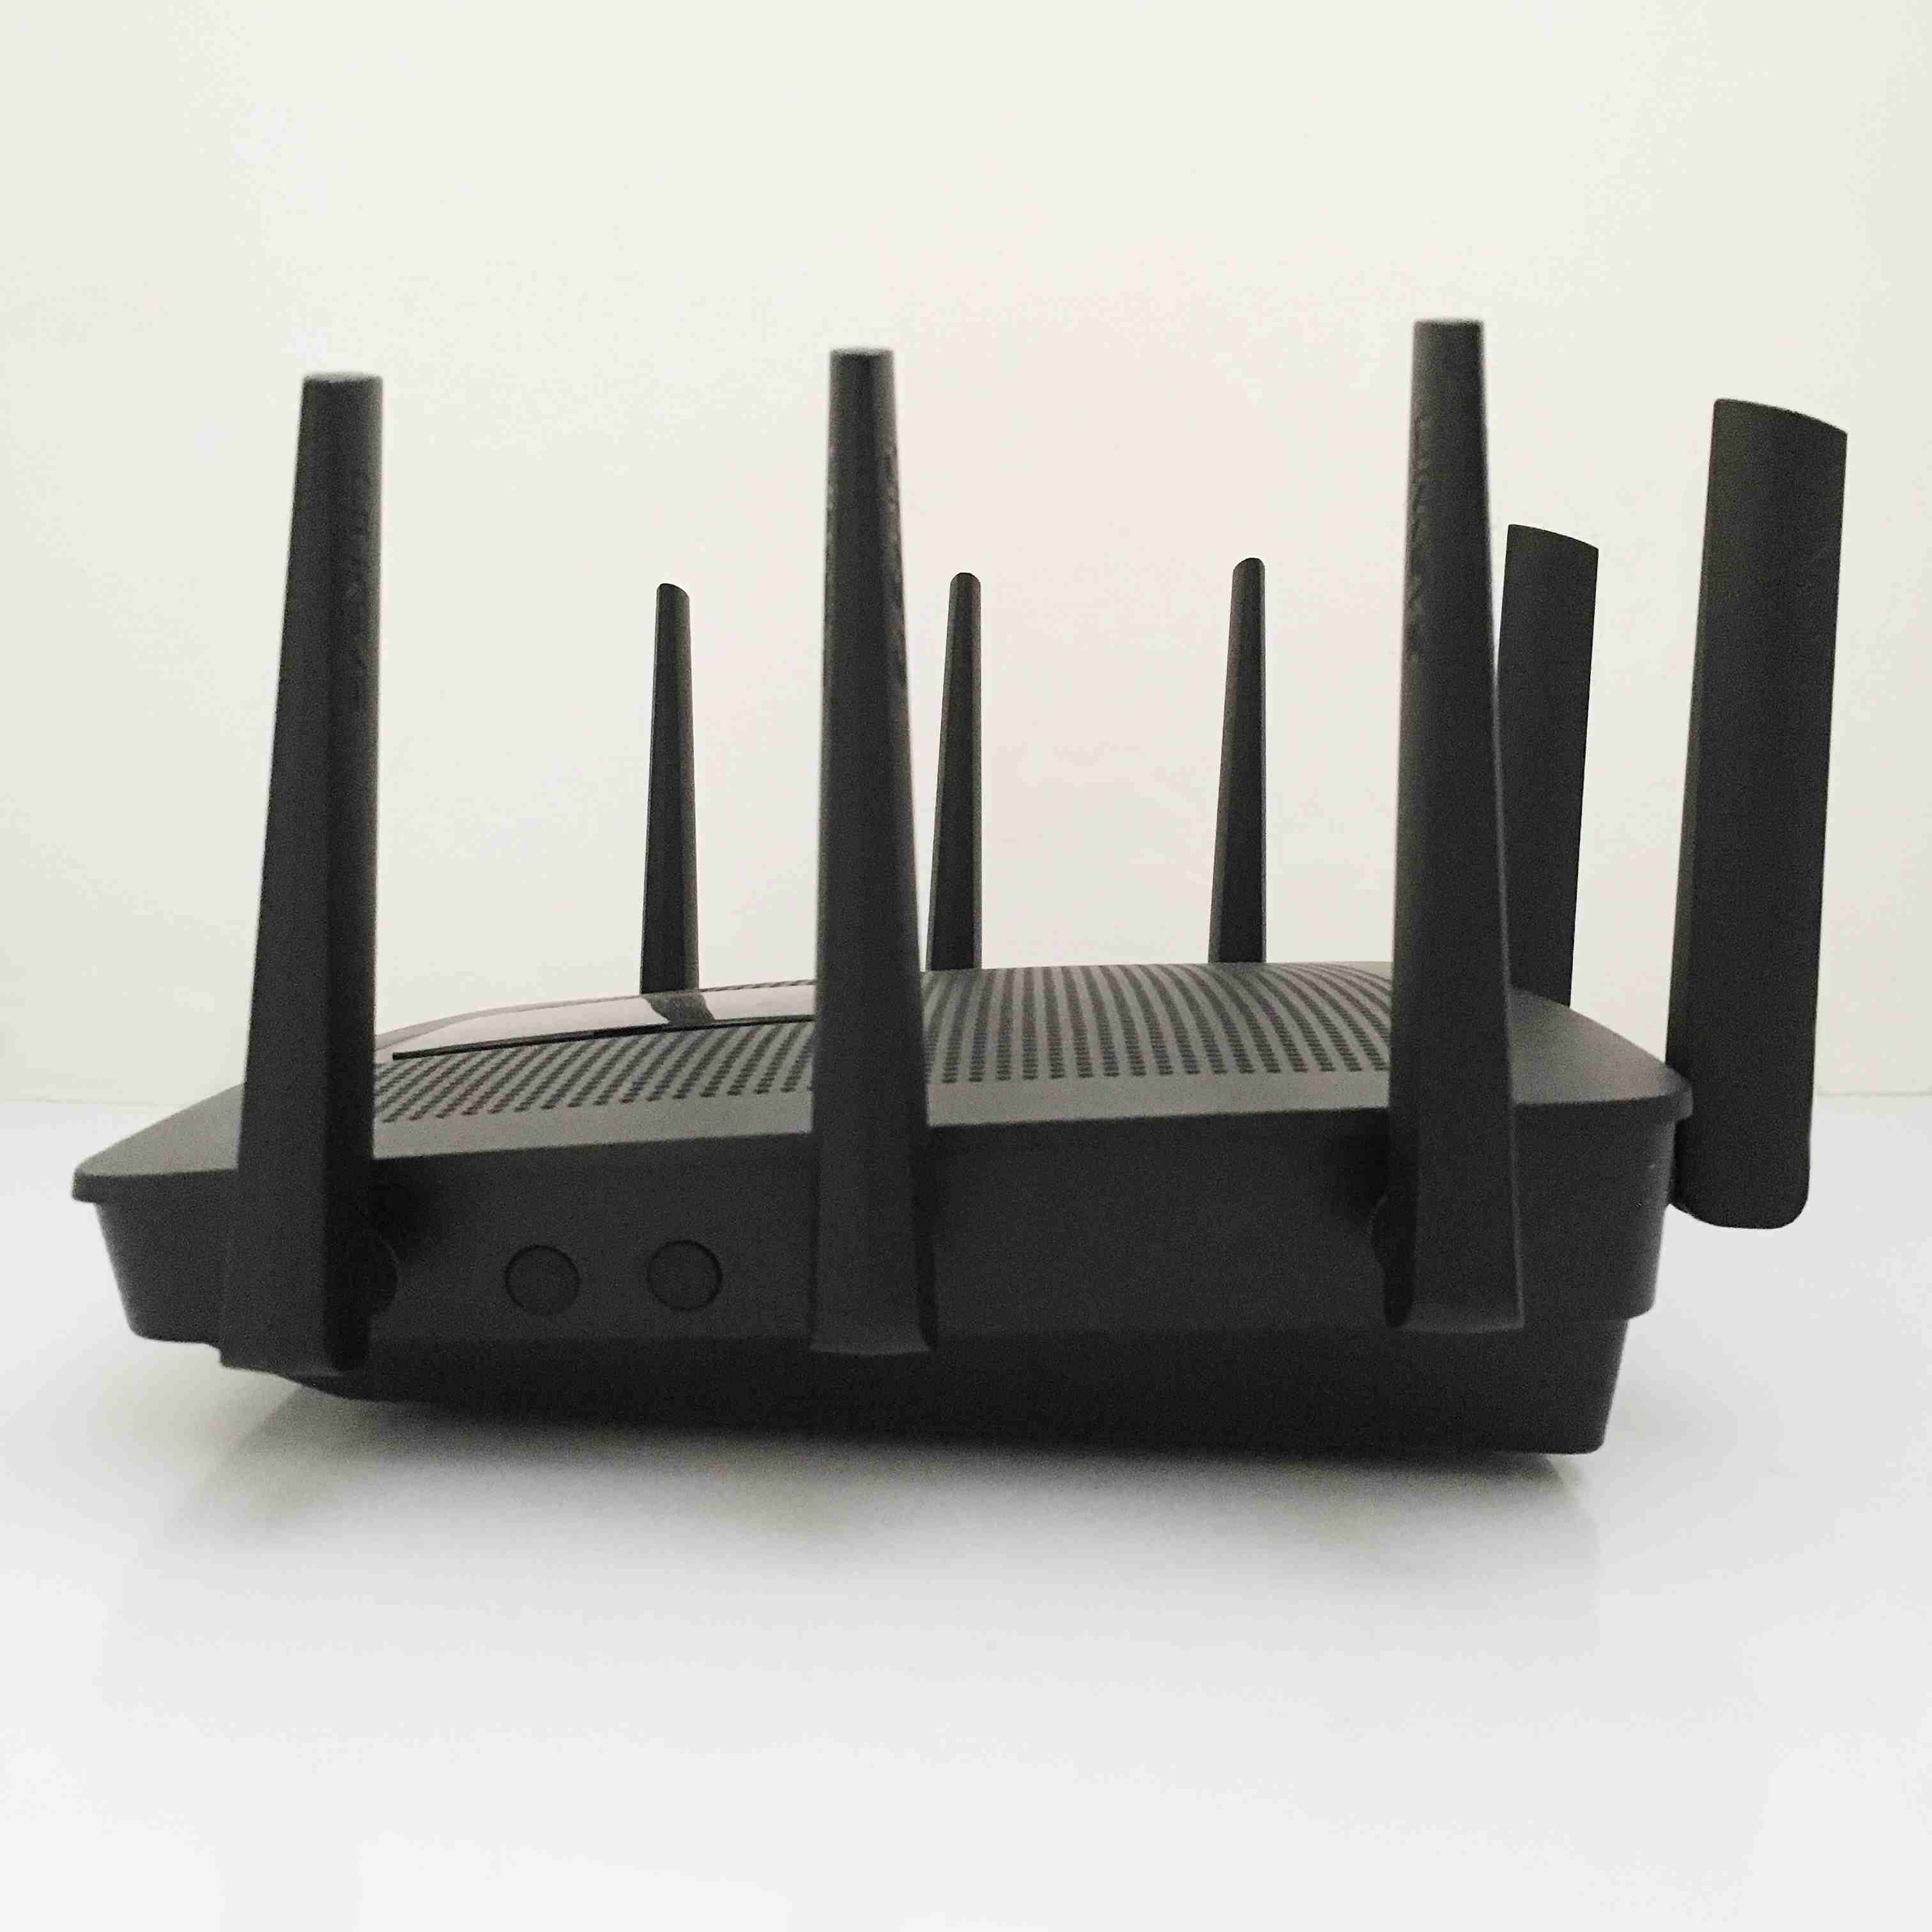 The 12 Best Long-Range Routers of 2019